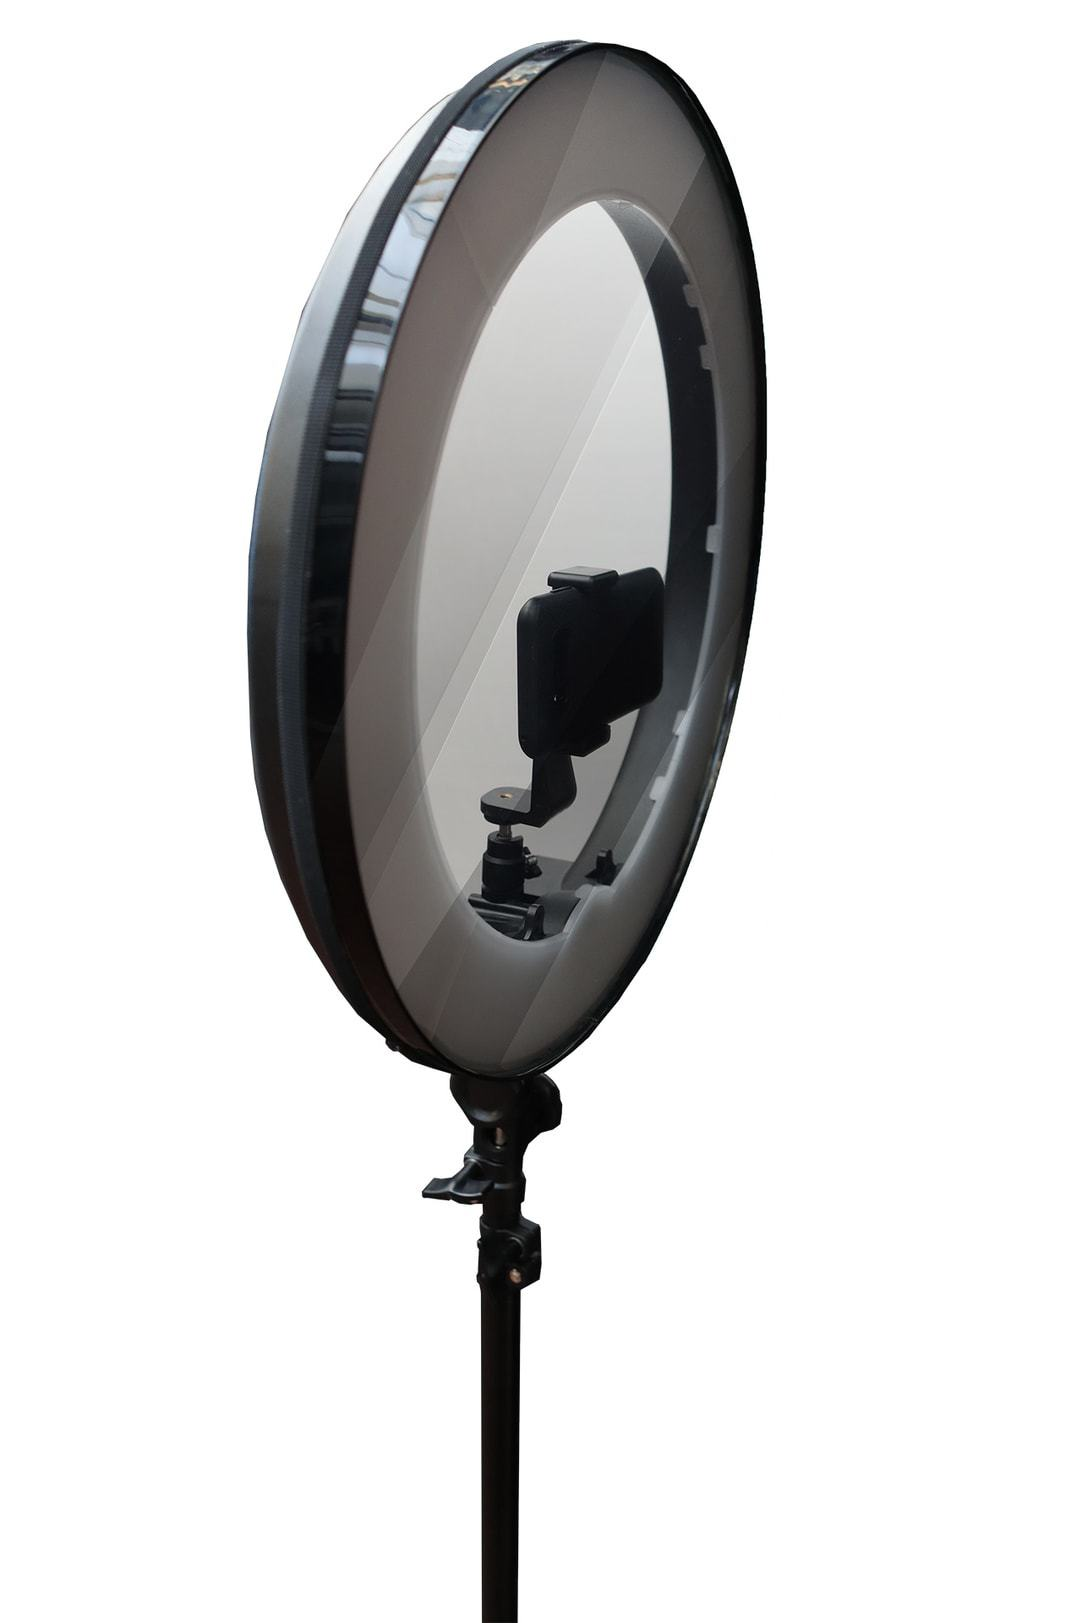 halo teleprompter mirror with mirror